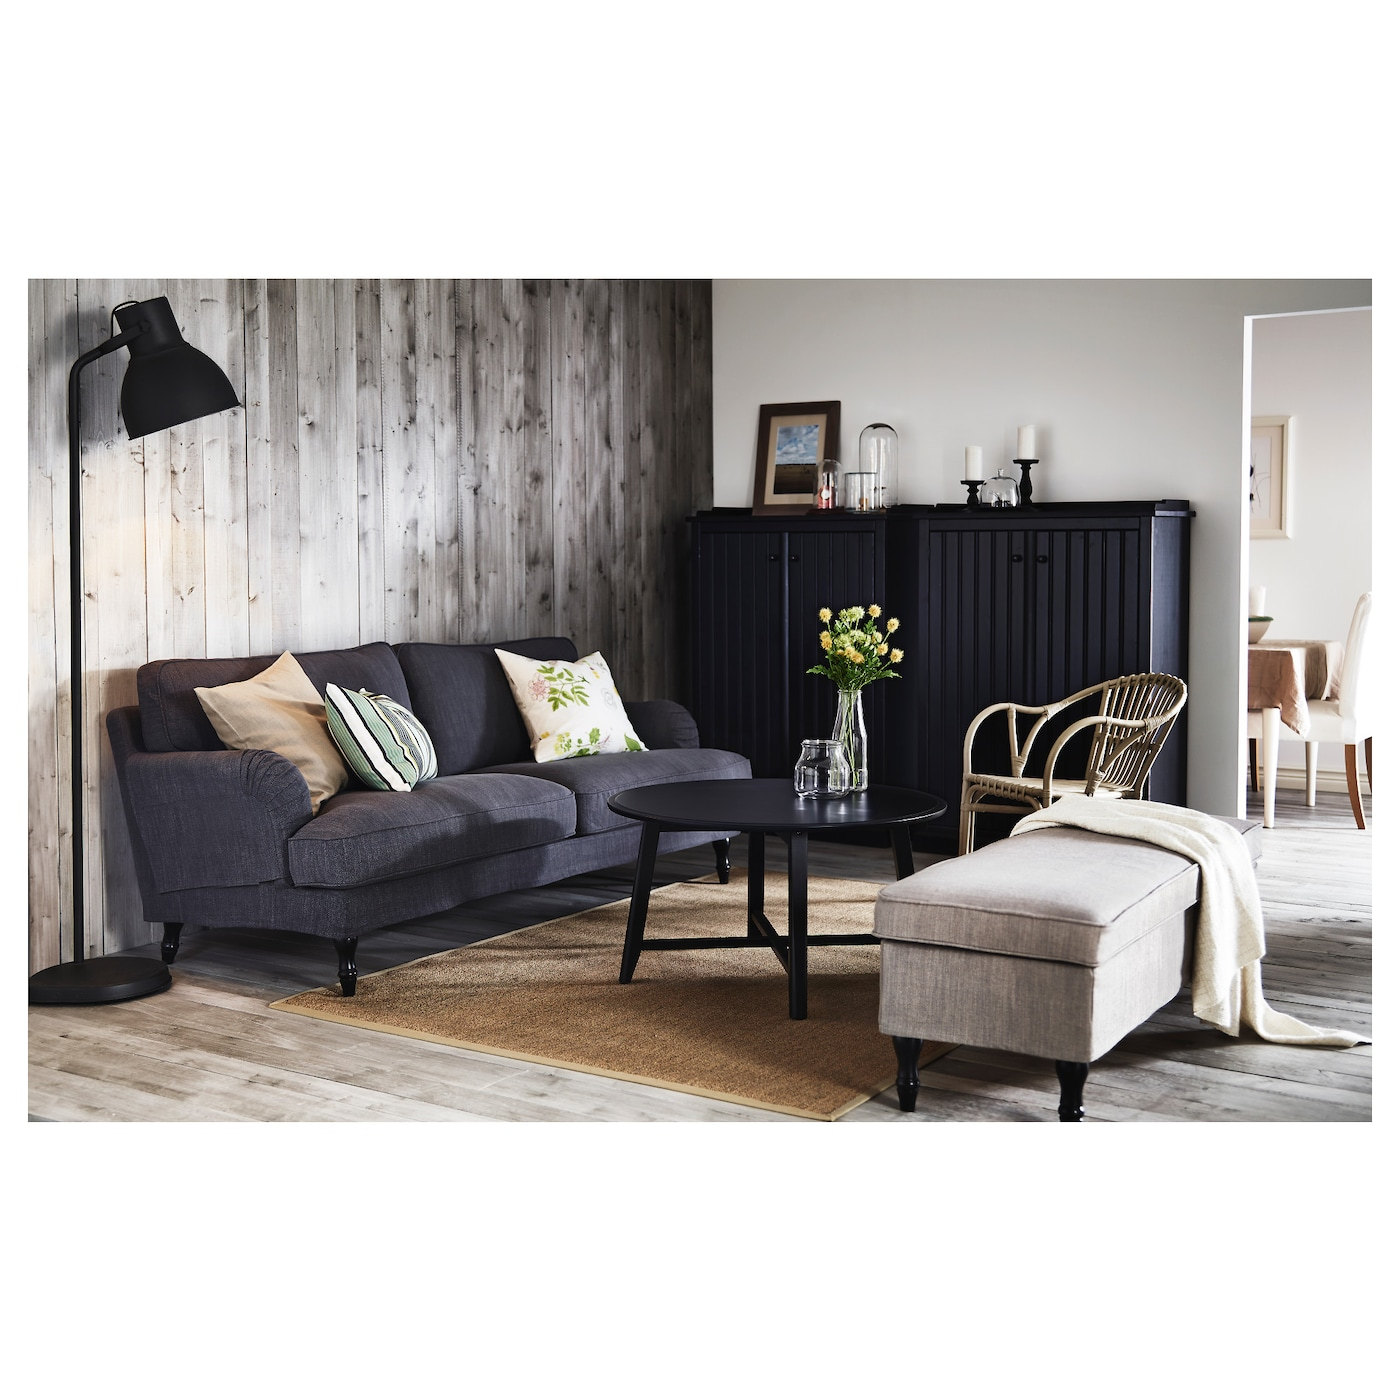 stocksund canap 3 places nolhaga gris fonc noir bois ikea. Black Bedroom Furniture Sets. Home Design Ideas